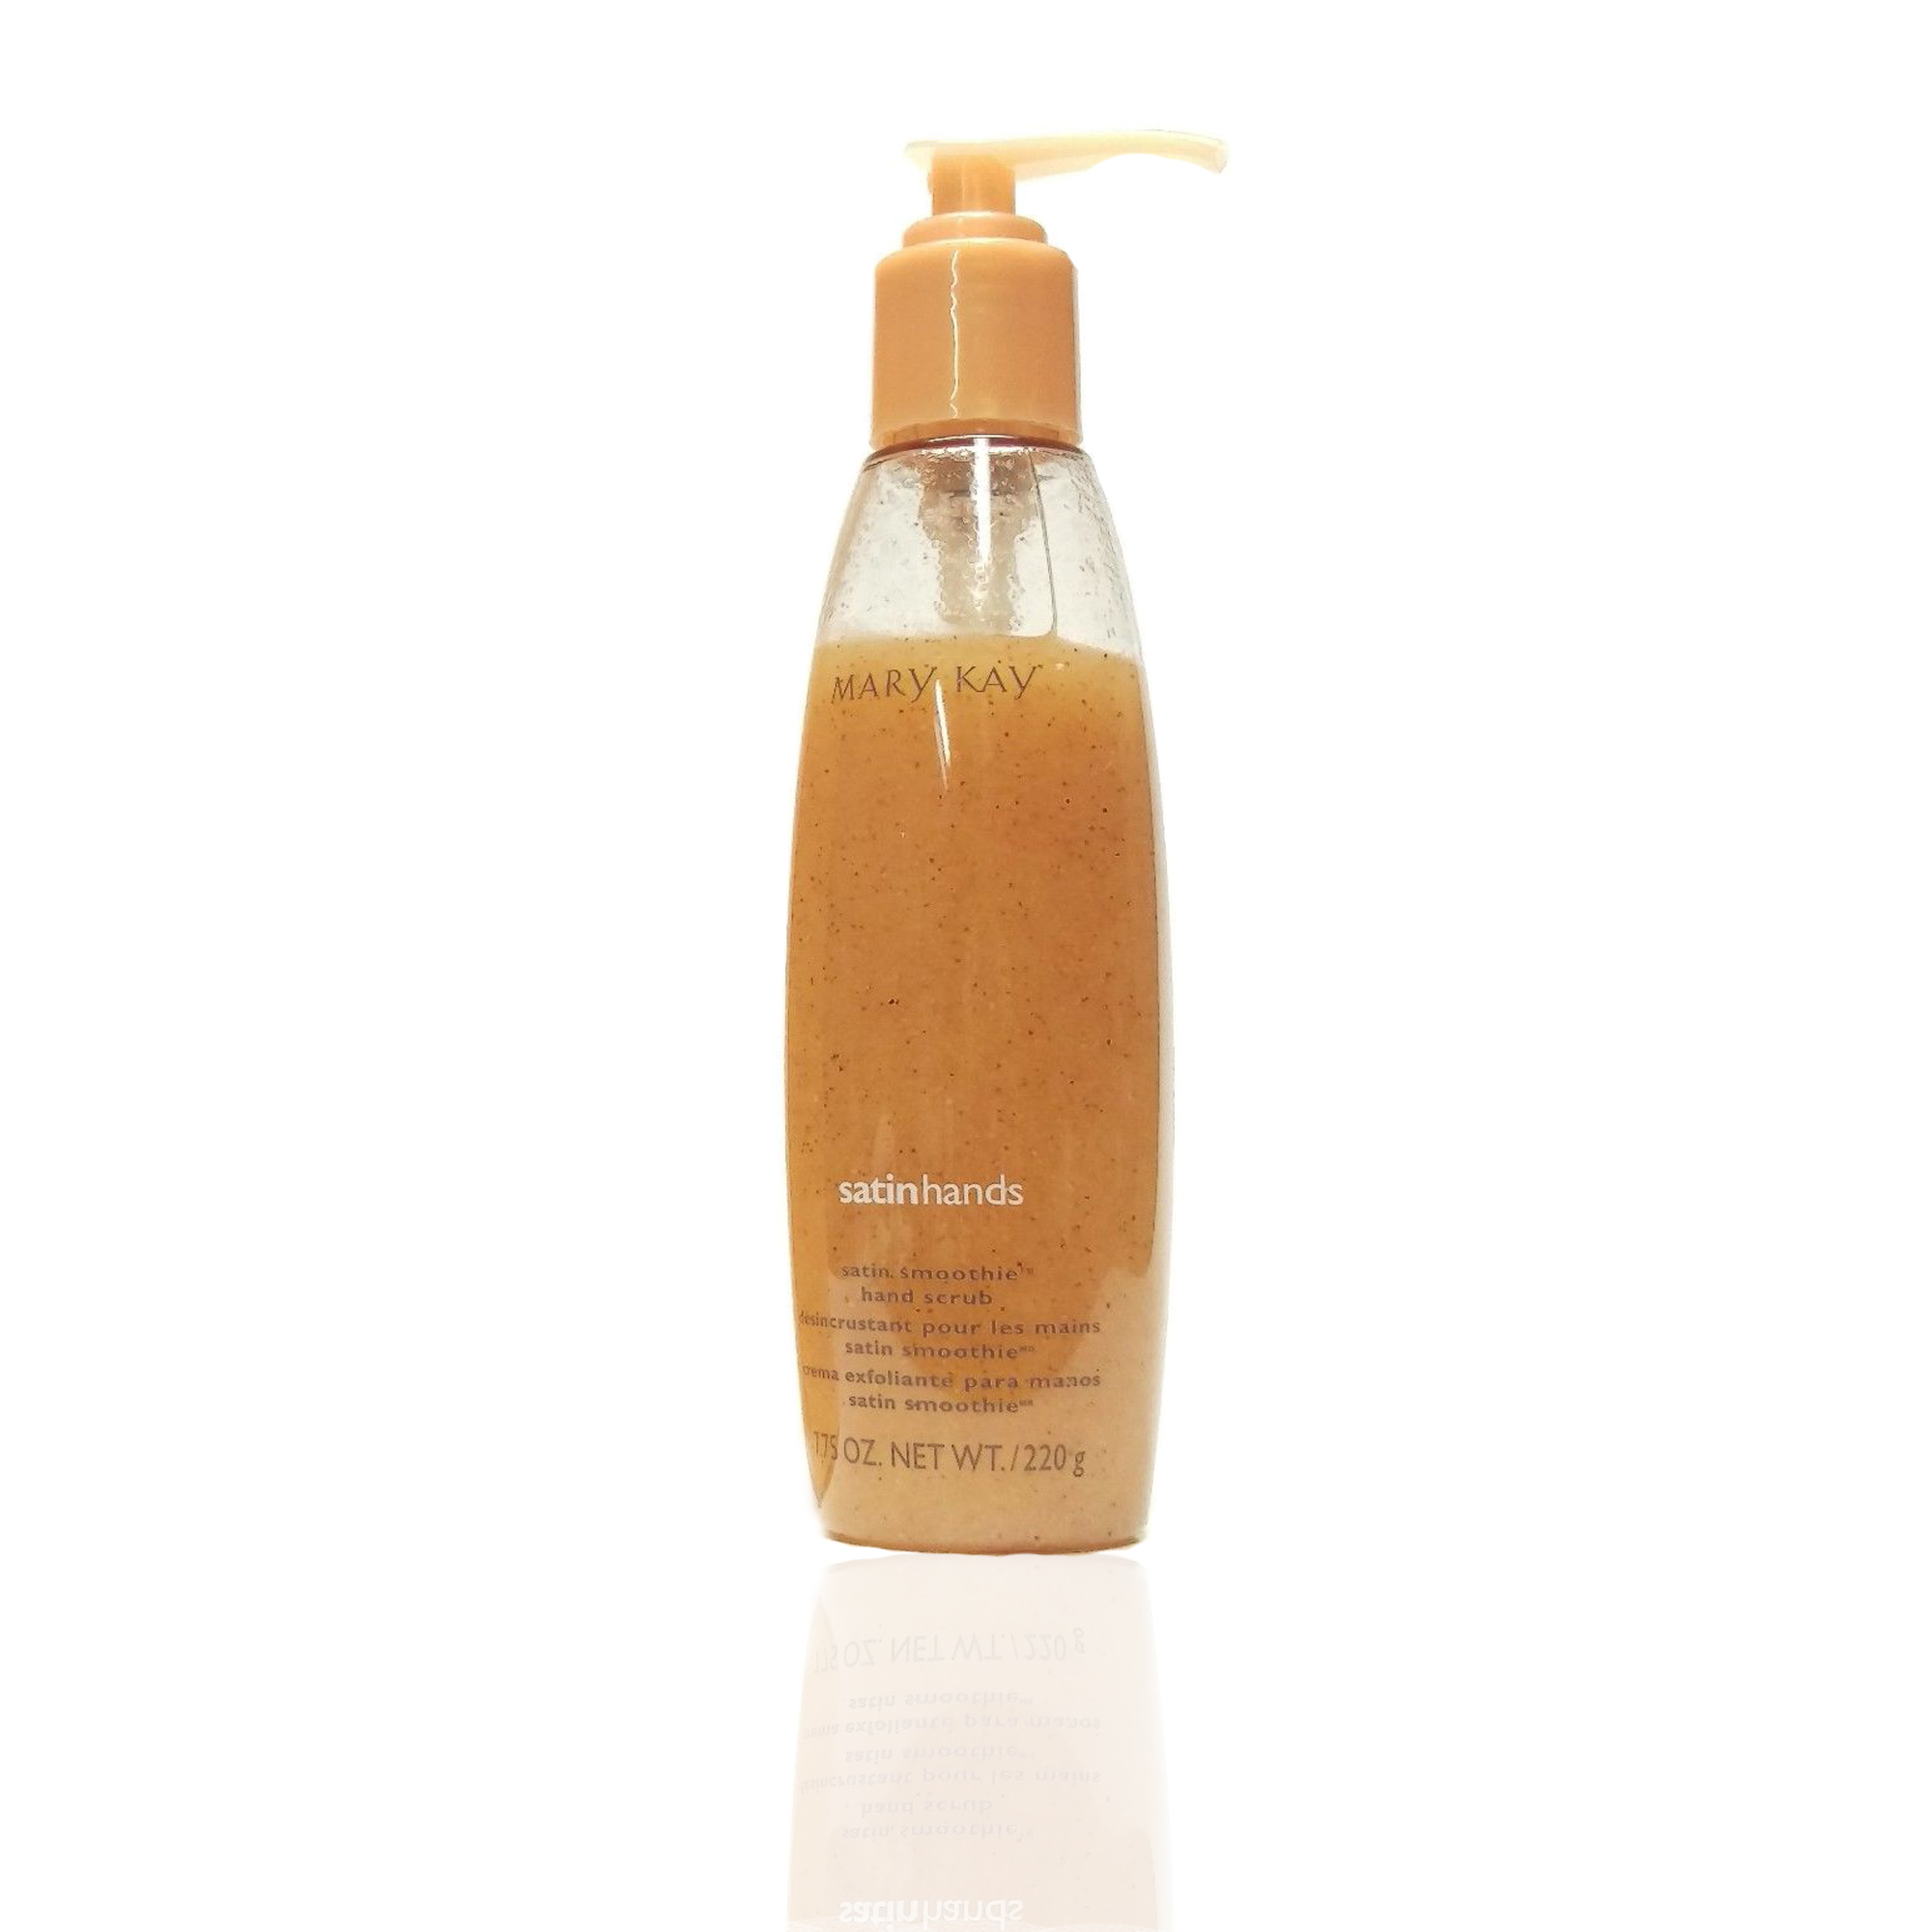 mary kay satin smoothie hand scrub night body gel anti cellulite peach 220g ebay. Black Bedroom Furniture Sets. Home Design Ideas